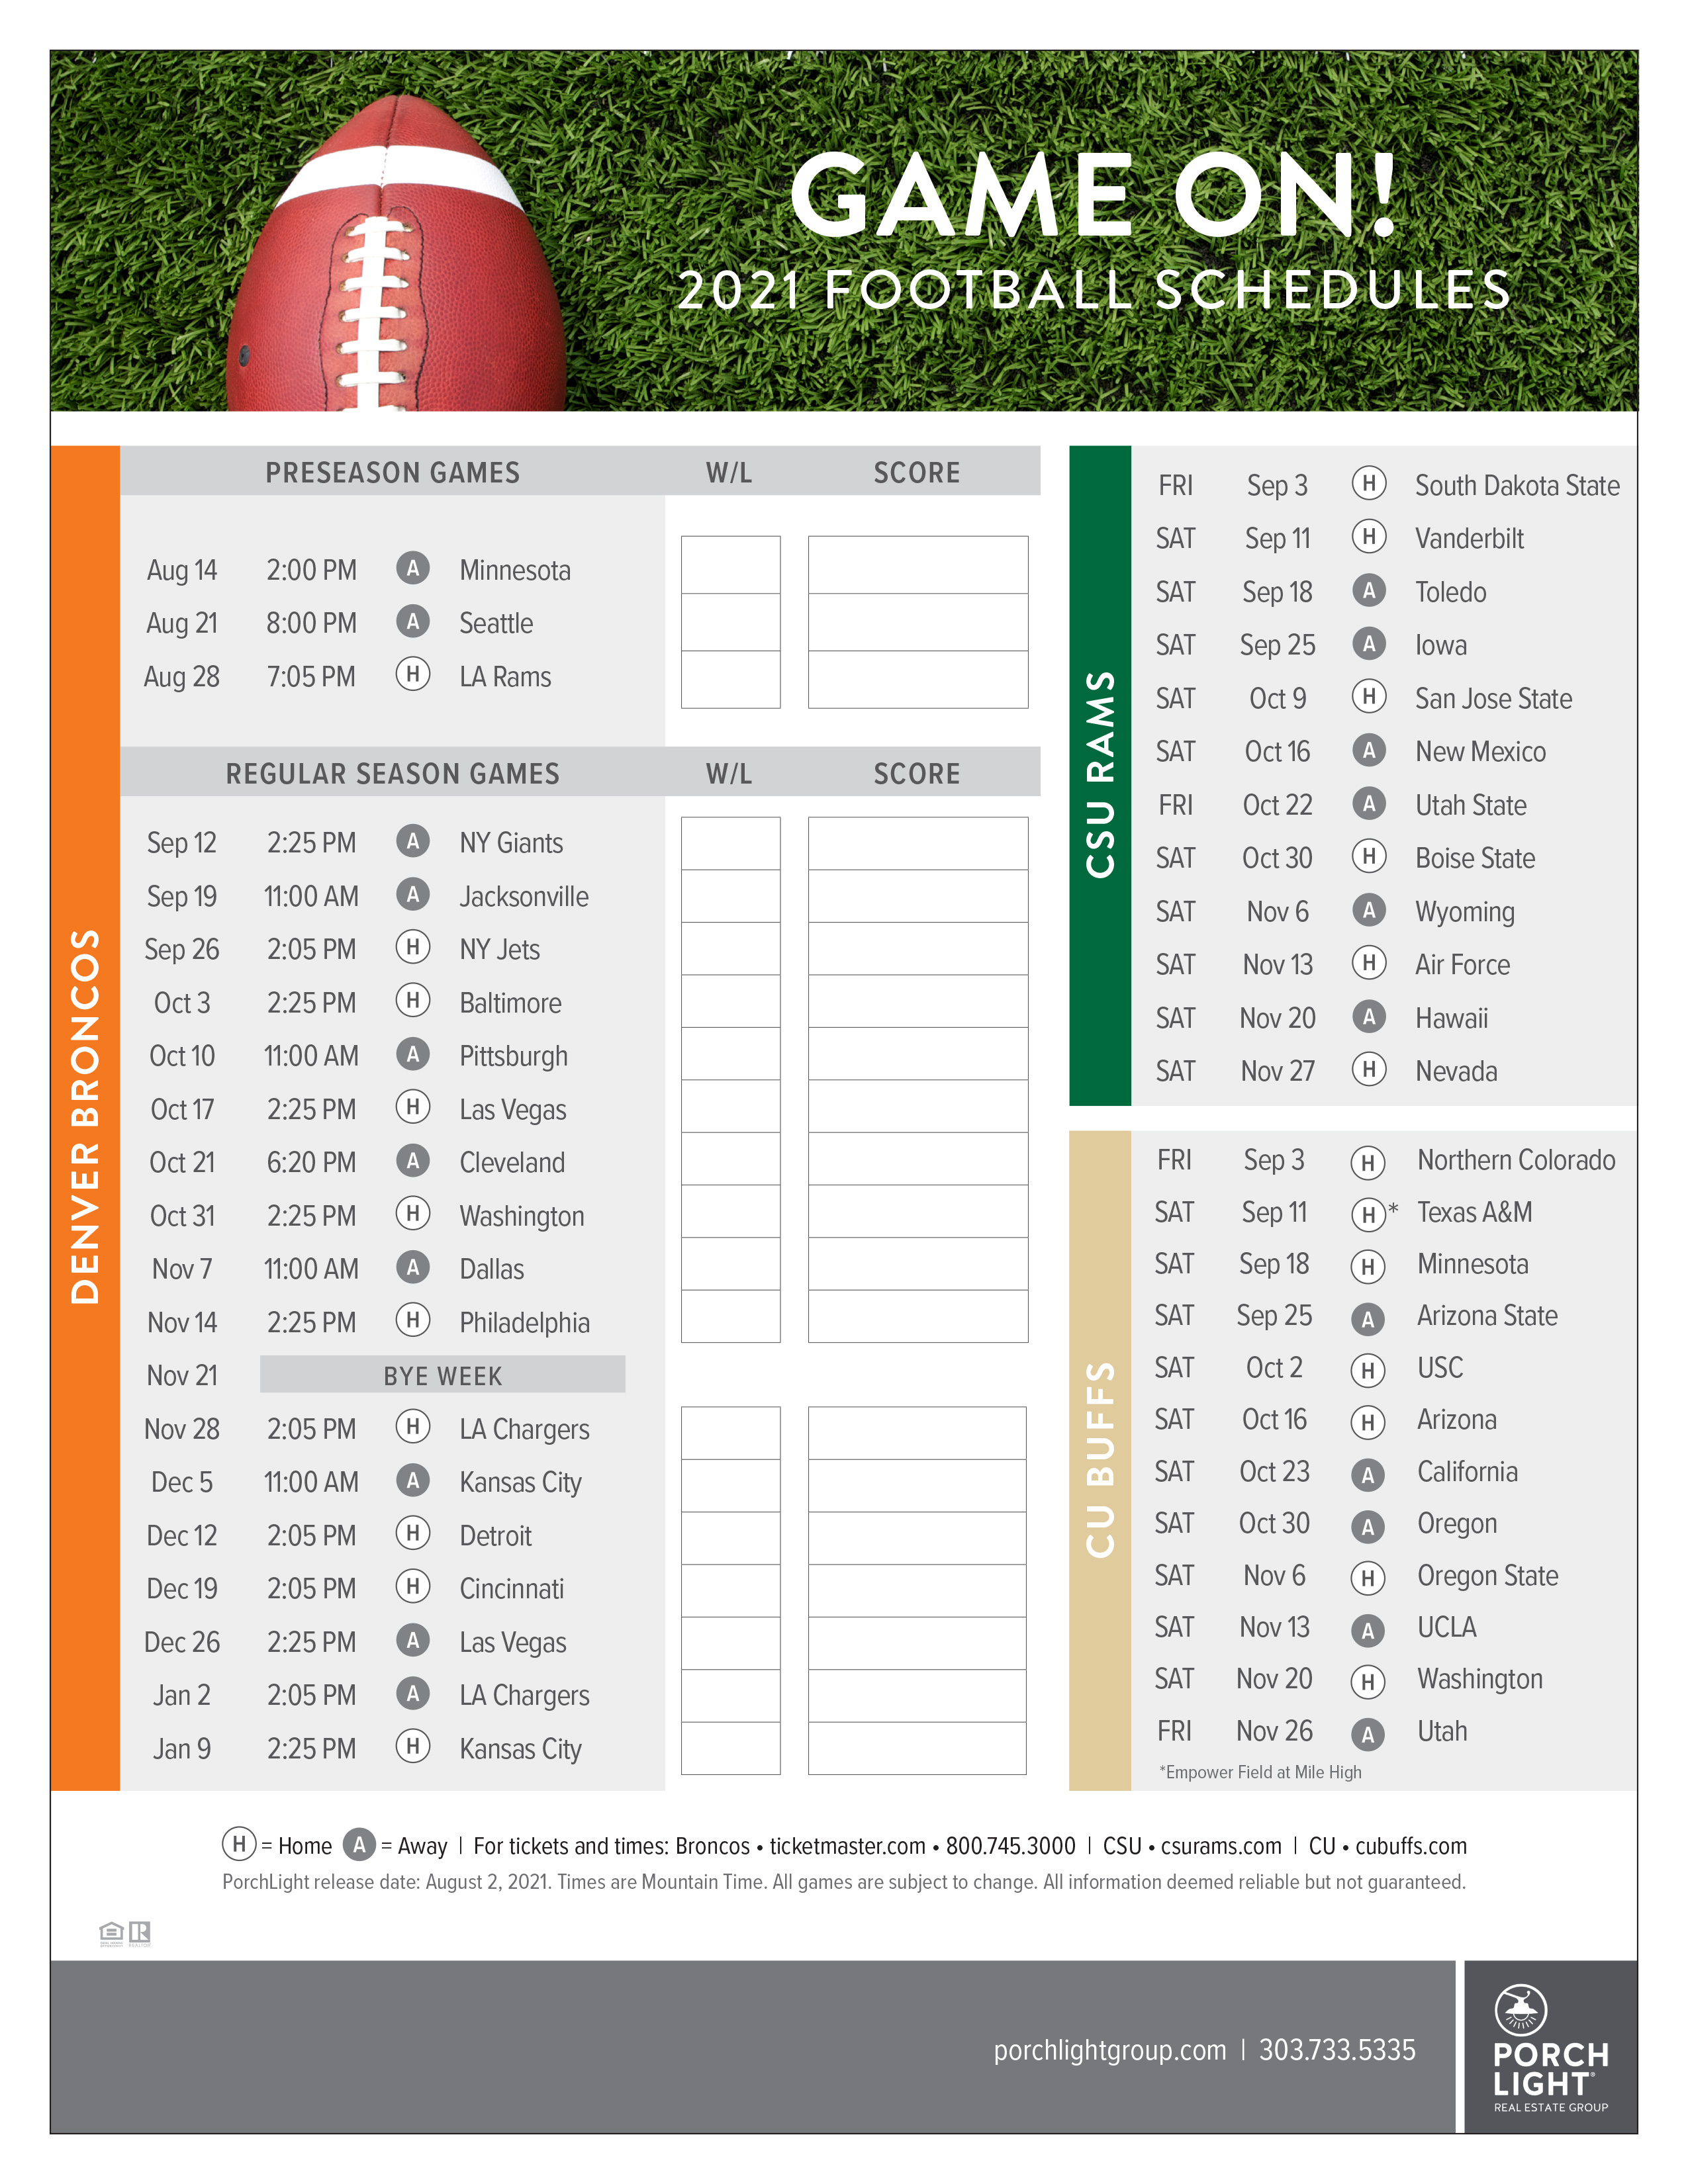 2021 Denver Broncos football schedule plus Buffs and Rams